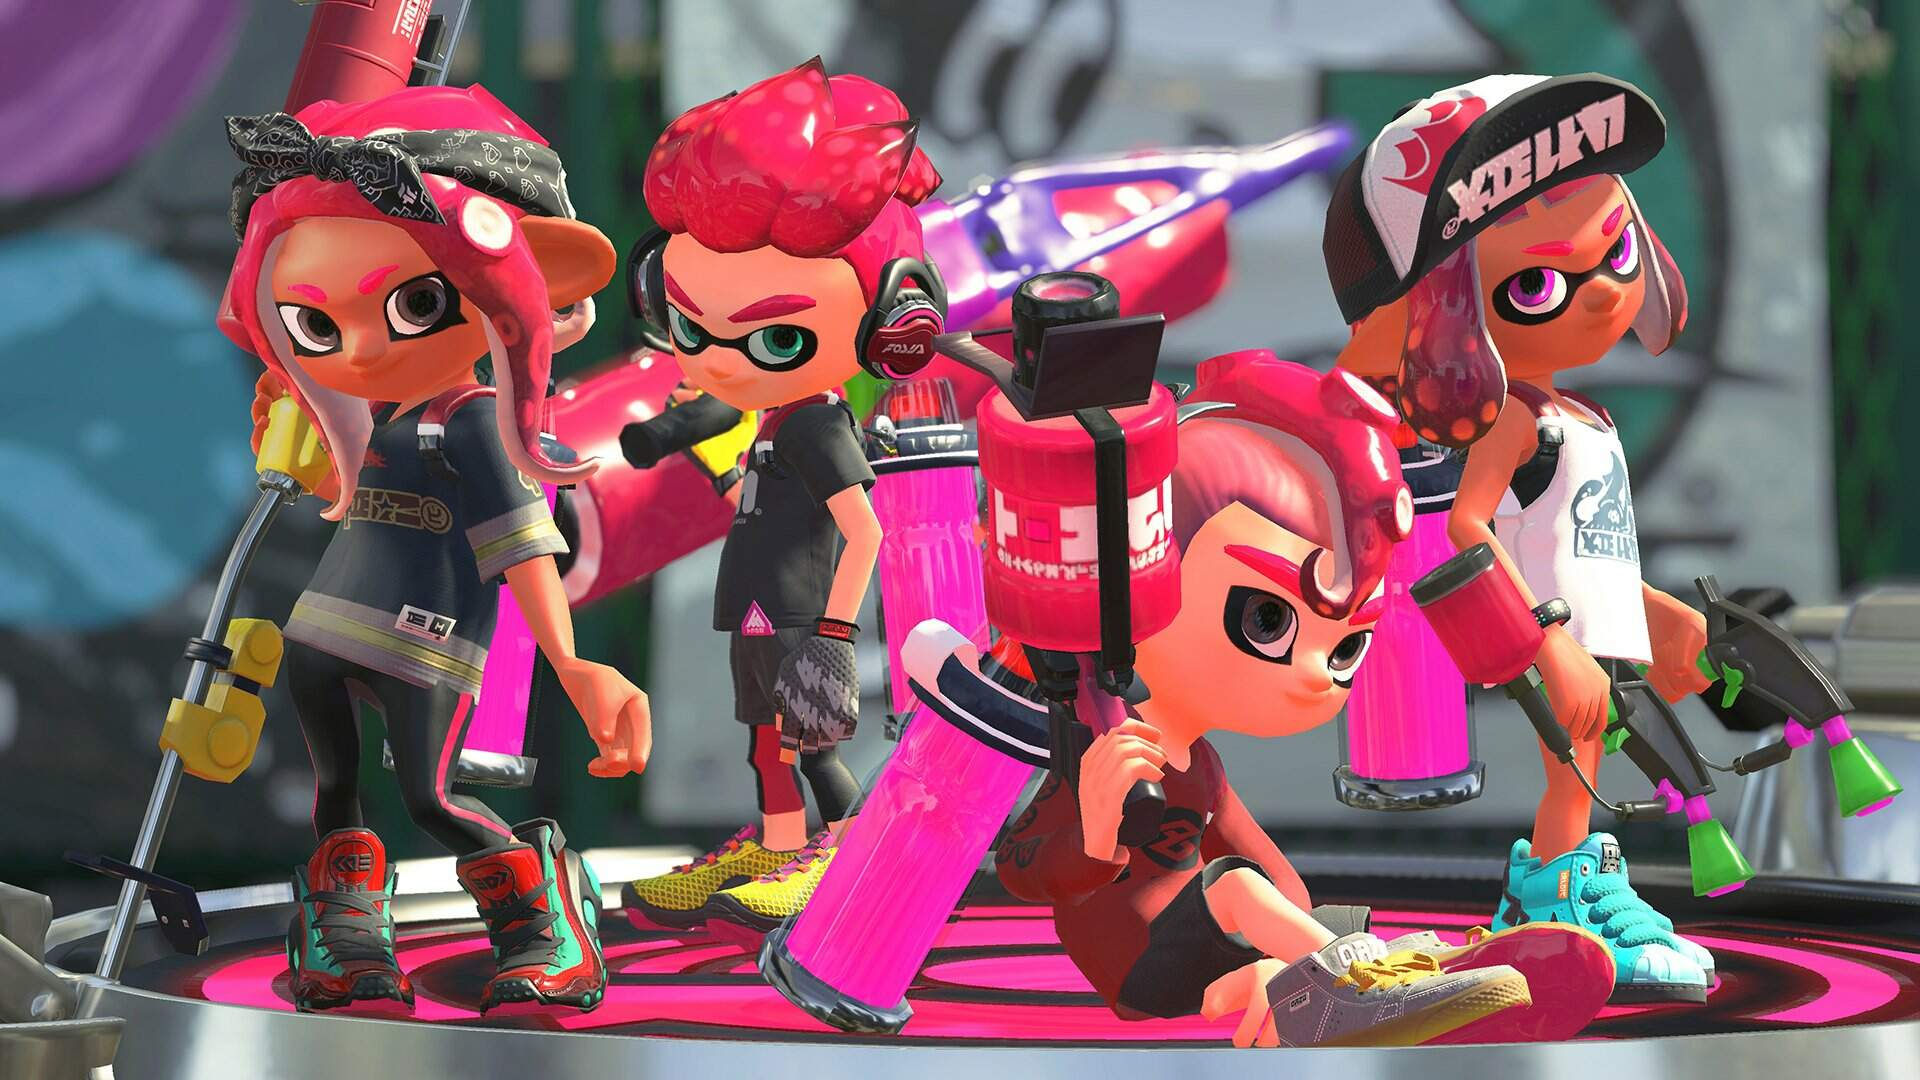 Splatoon, Smash Bros. And More Clash With Nintendo Over Cease-and-Desist Orders